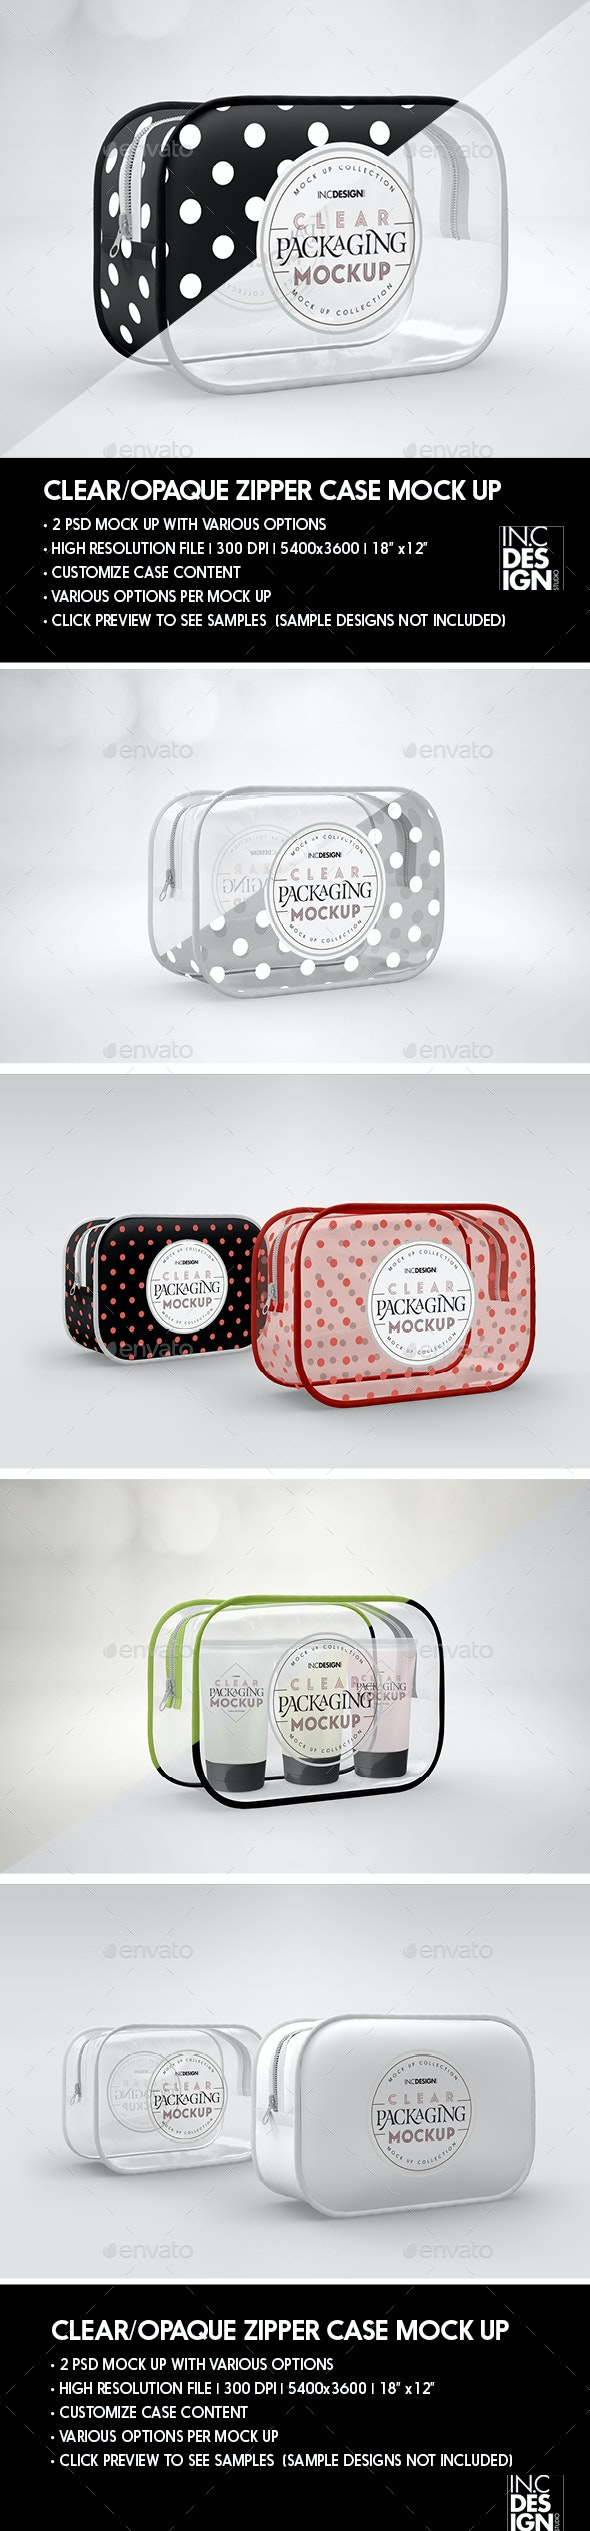 Clear or Opaque Zipper Case Packaging Mockup - Packaging Product Mock-Ups